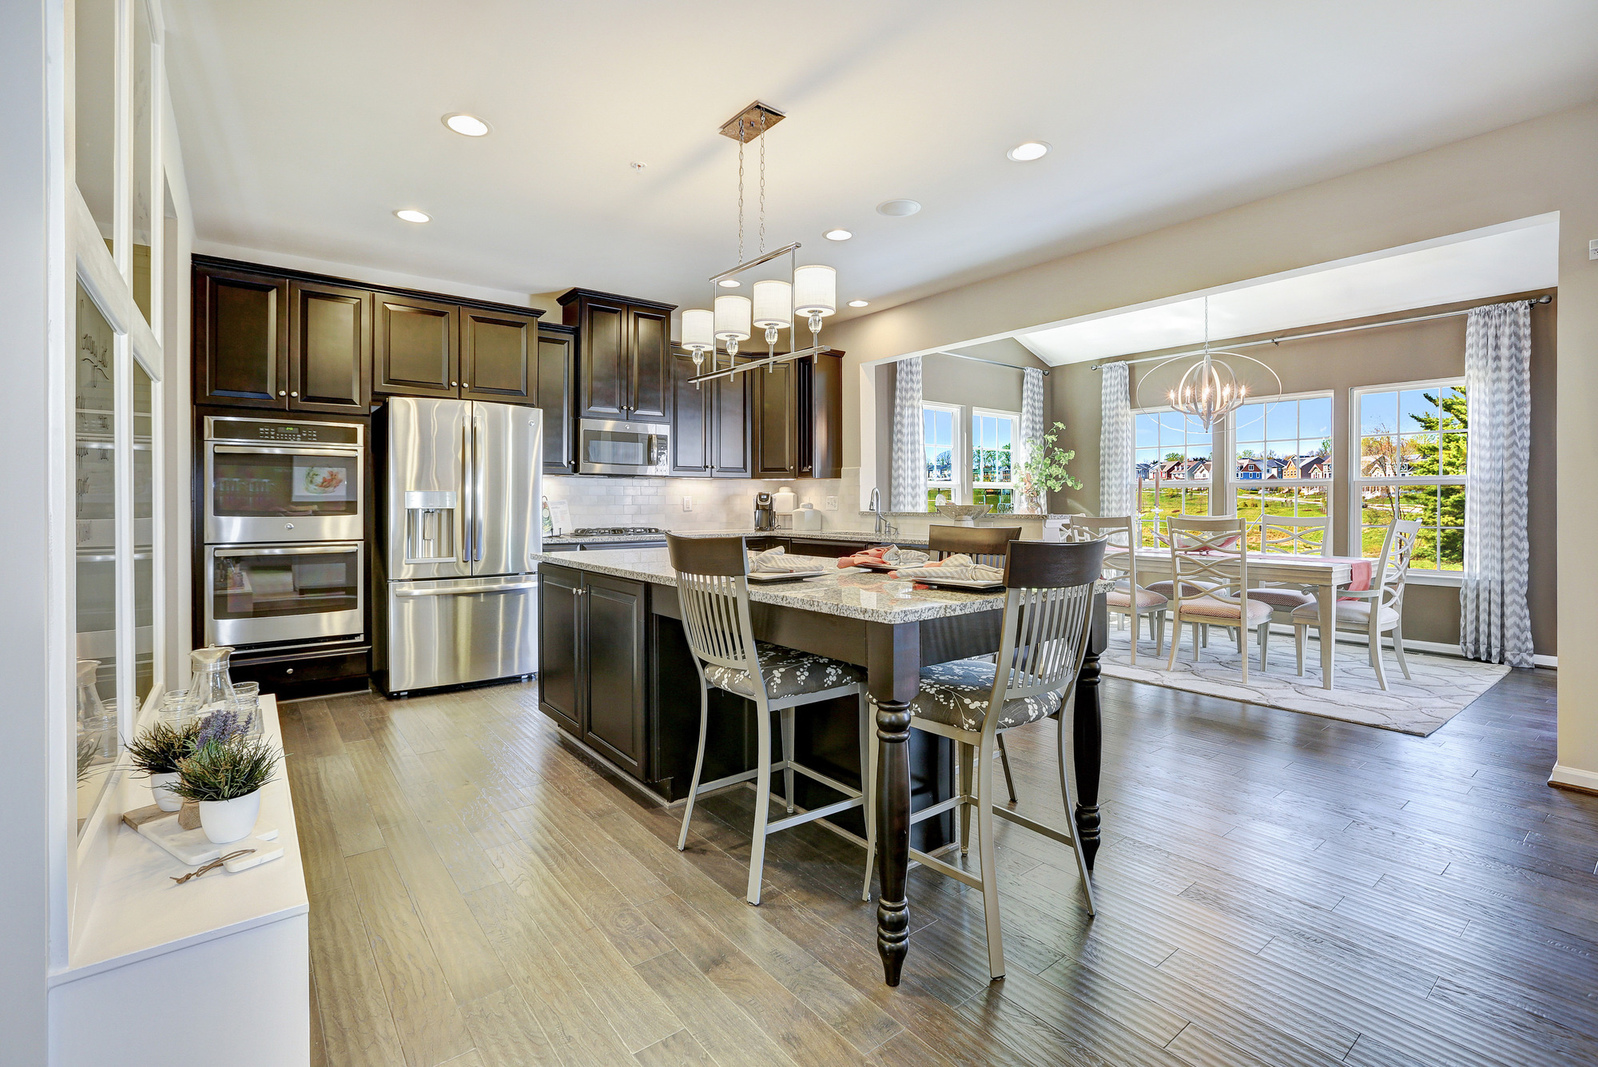 New Homes For Sale At Brentwood Single Family Homes In